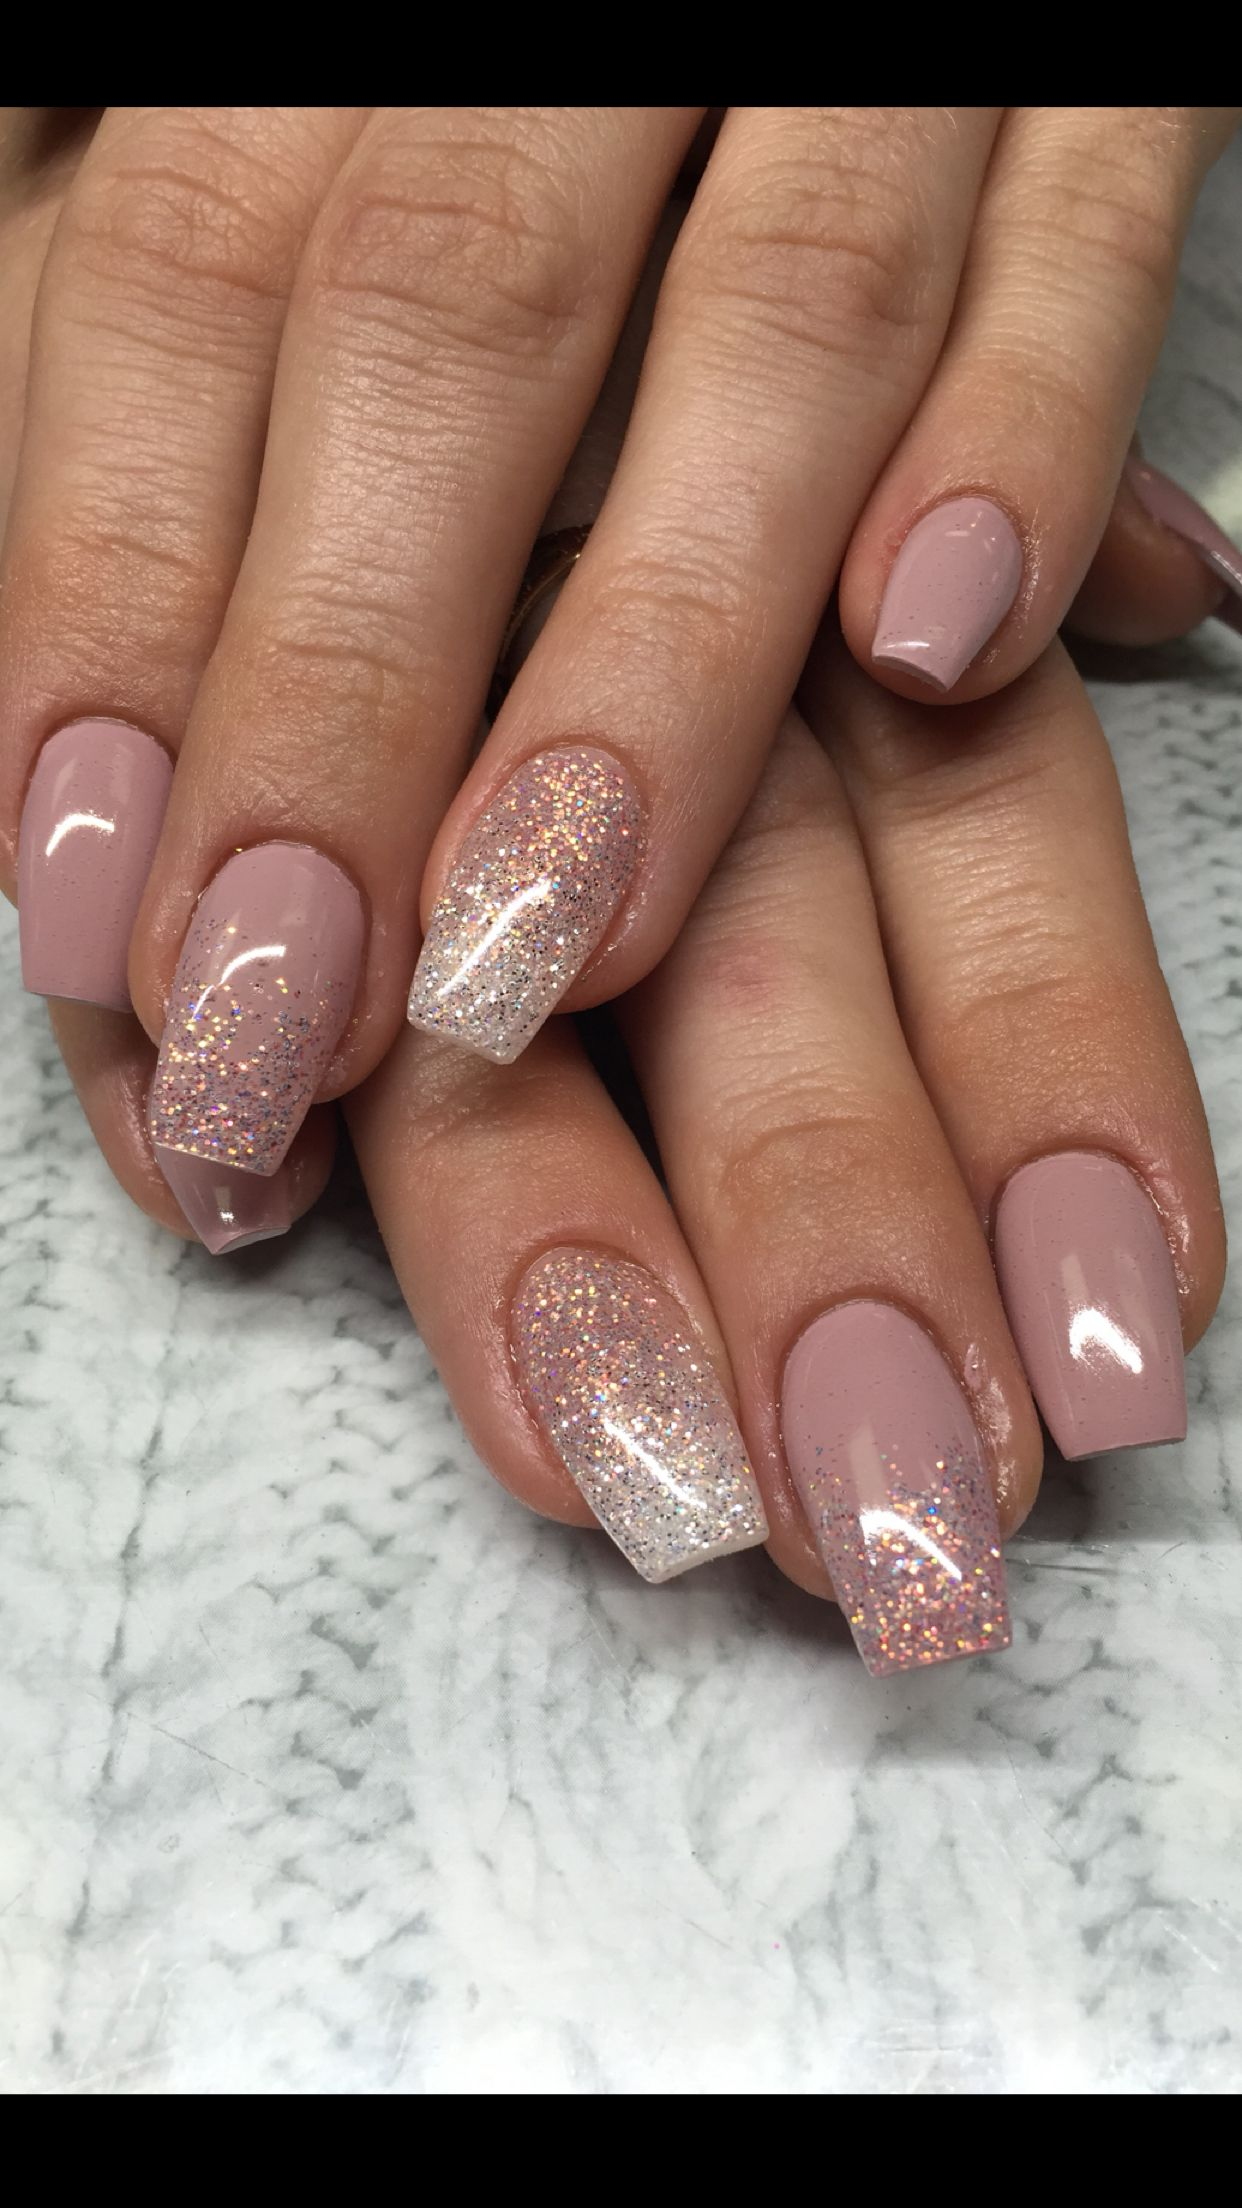 Hard Gel Nails Ballerina Coffin Light Elegance Your Churn With Sweet Nothing And